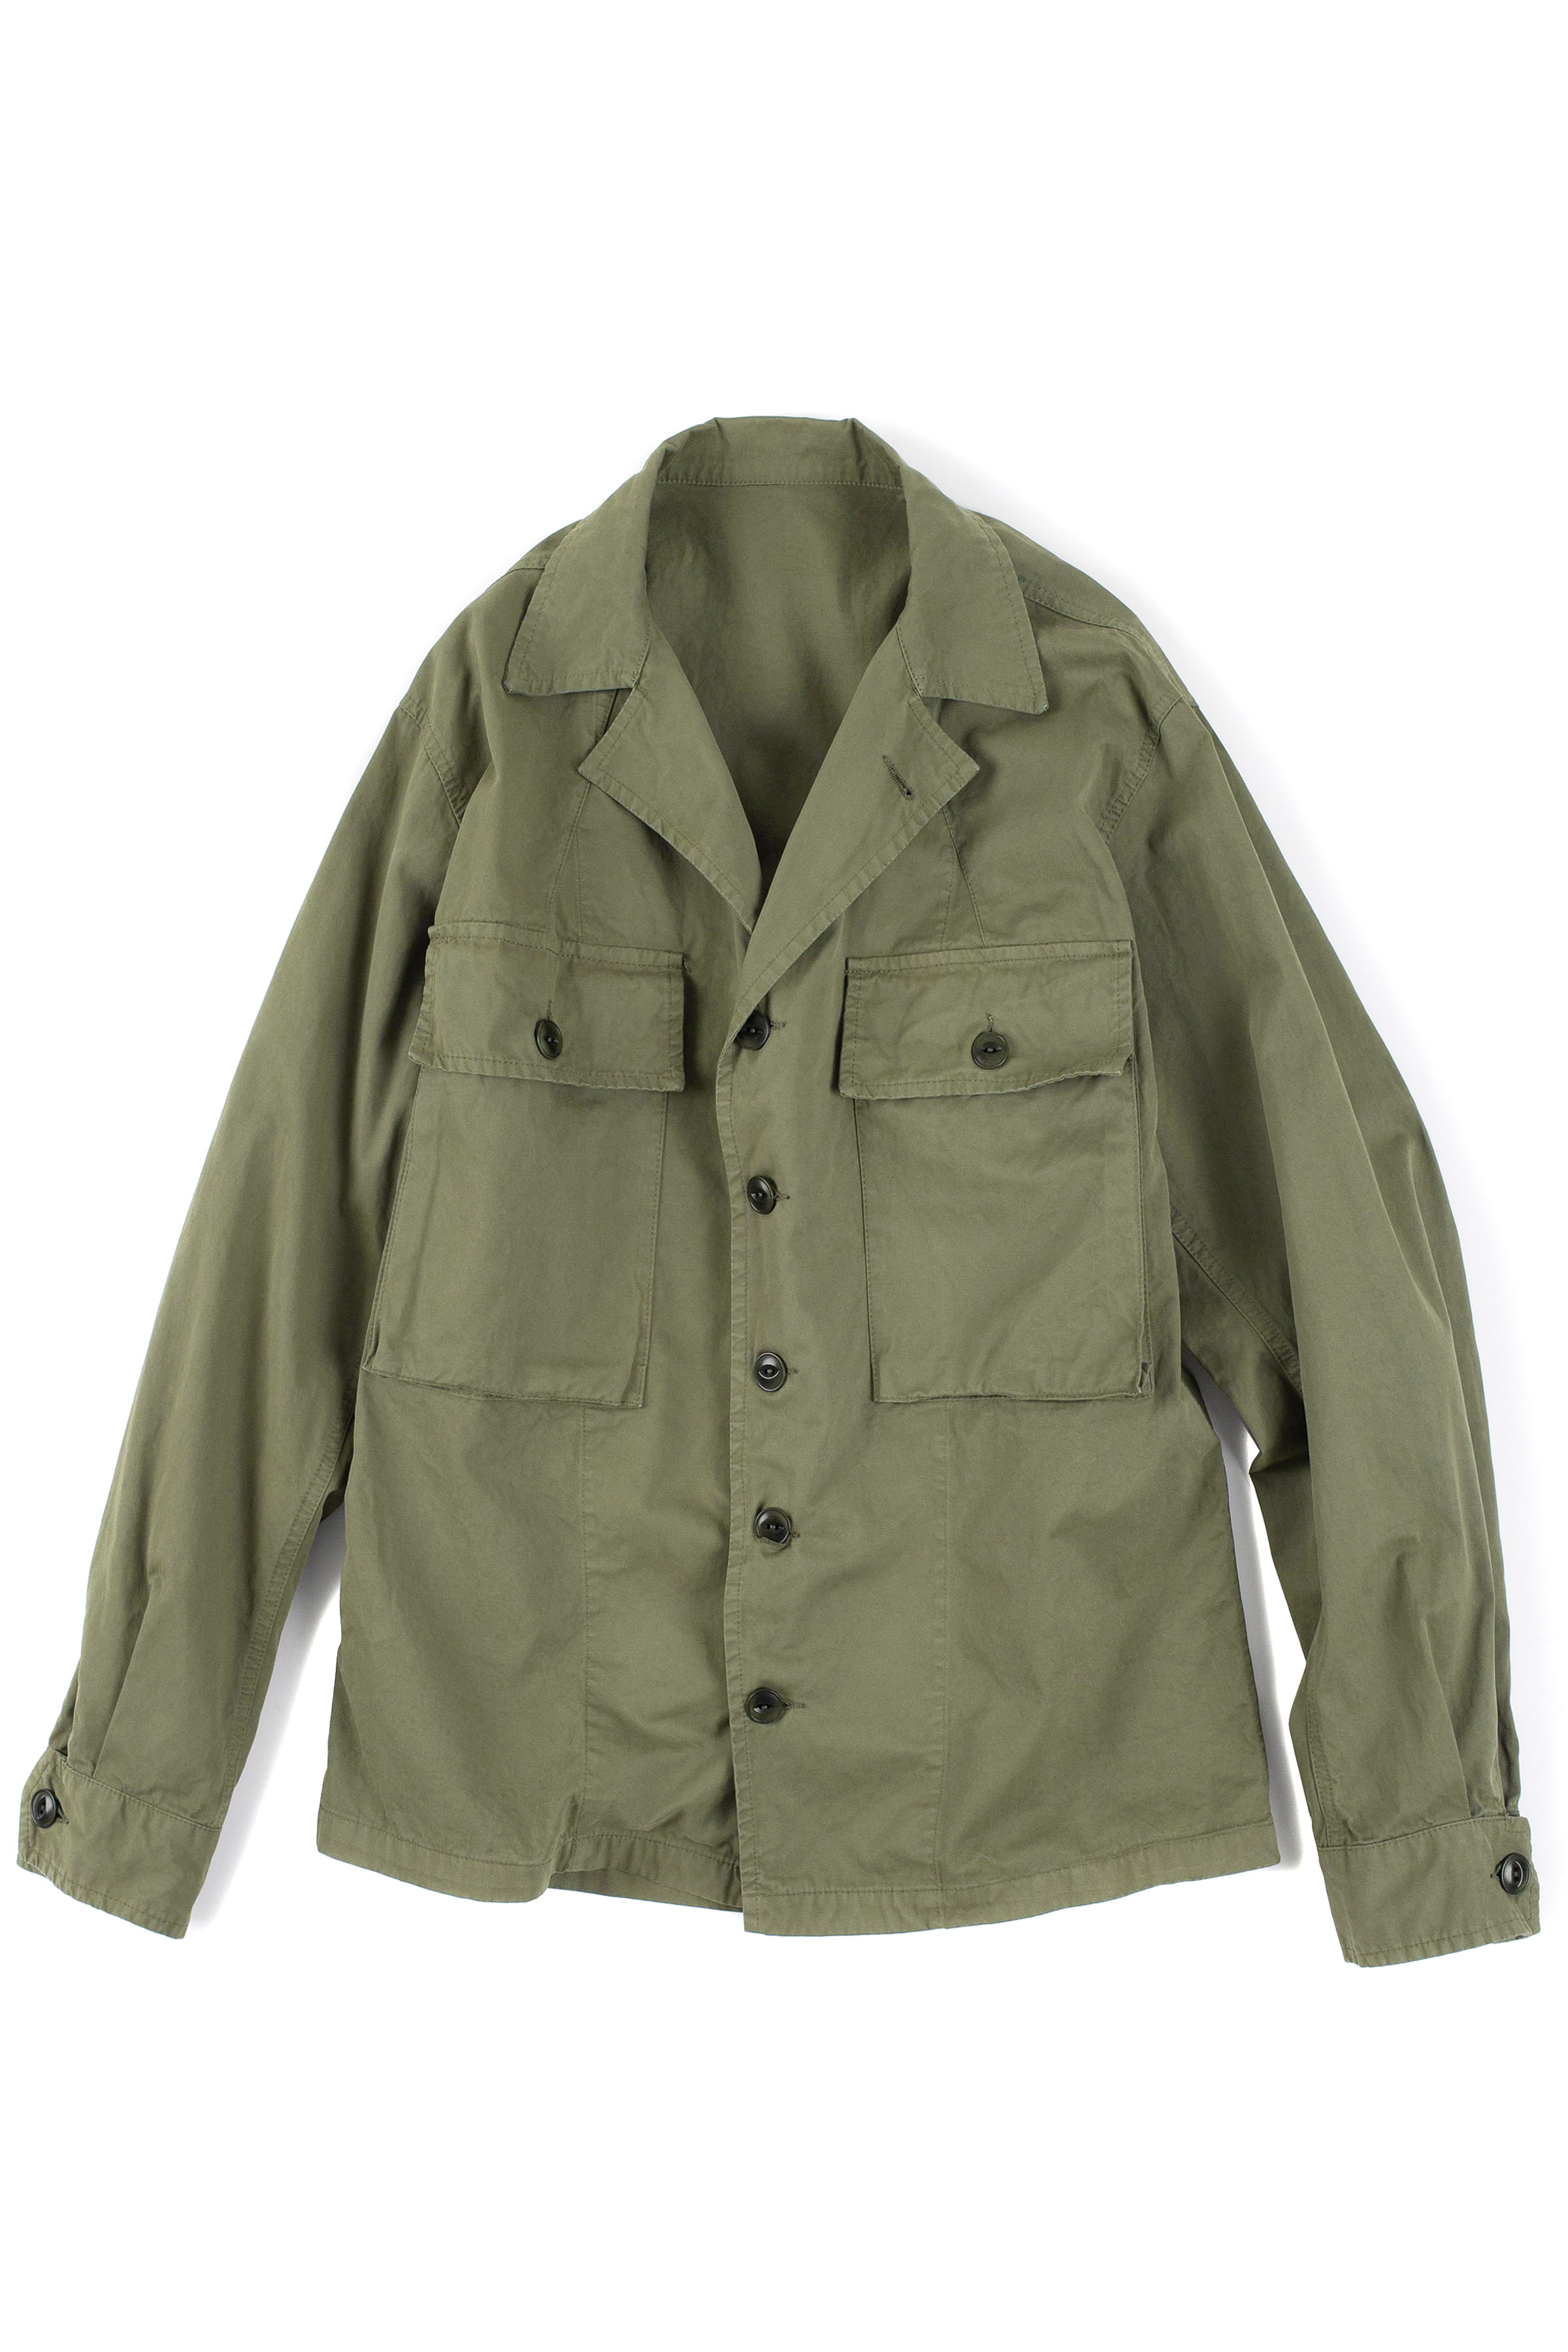 East Harbour Surplus : Marine Shirts (Olive)